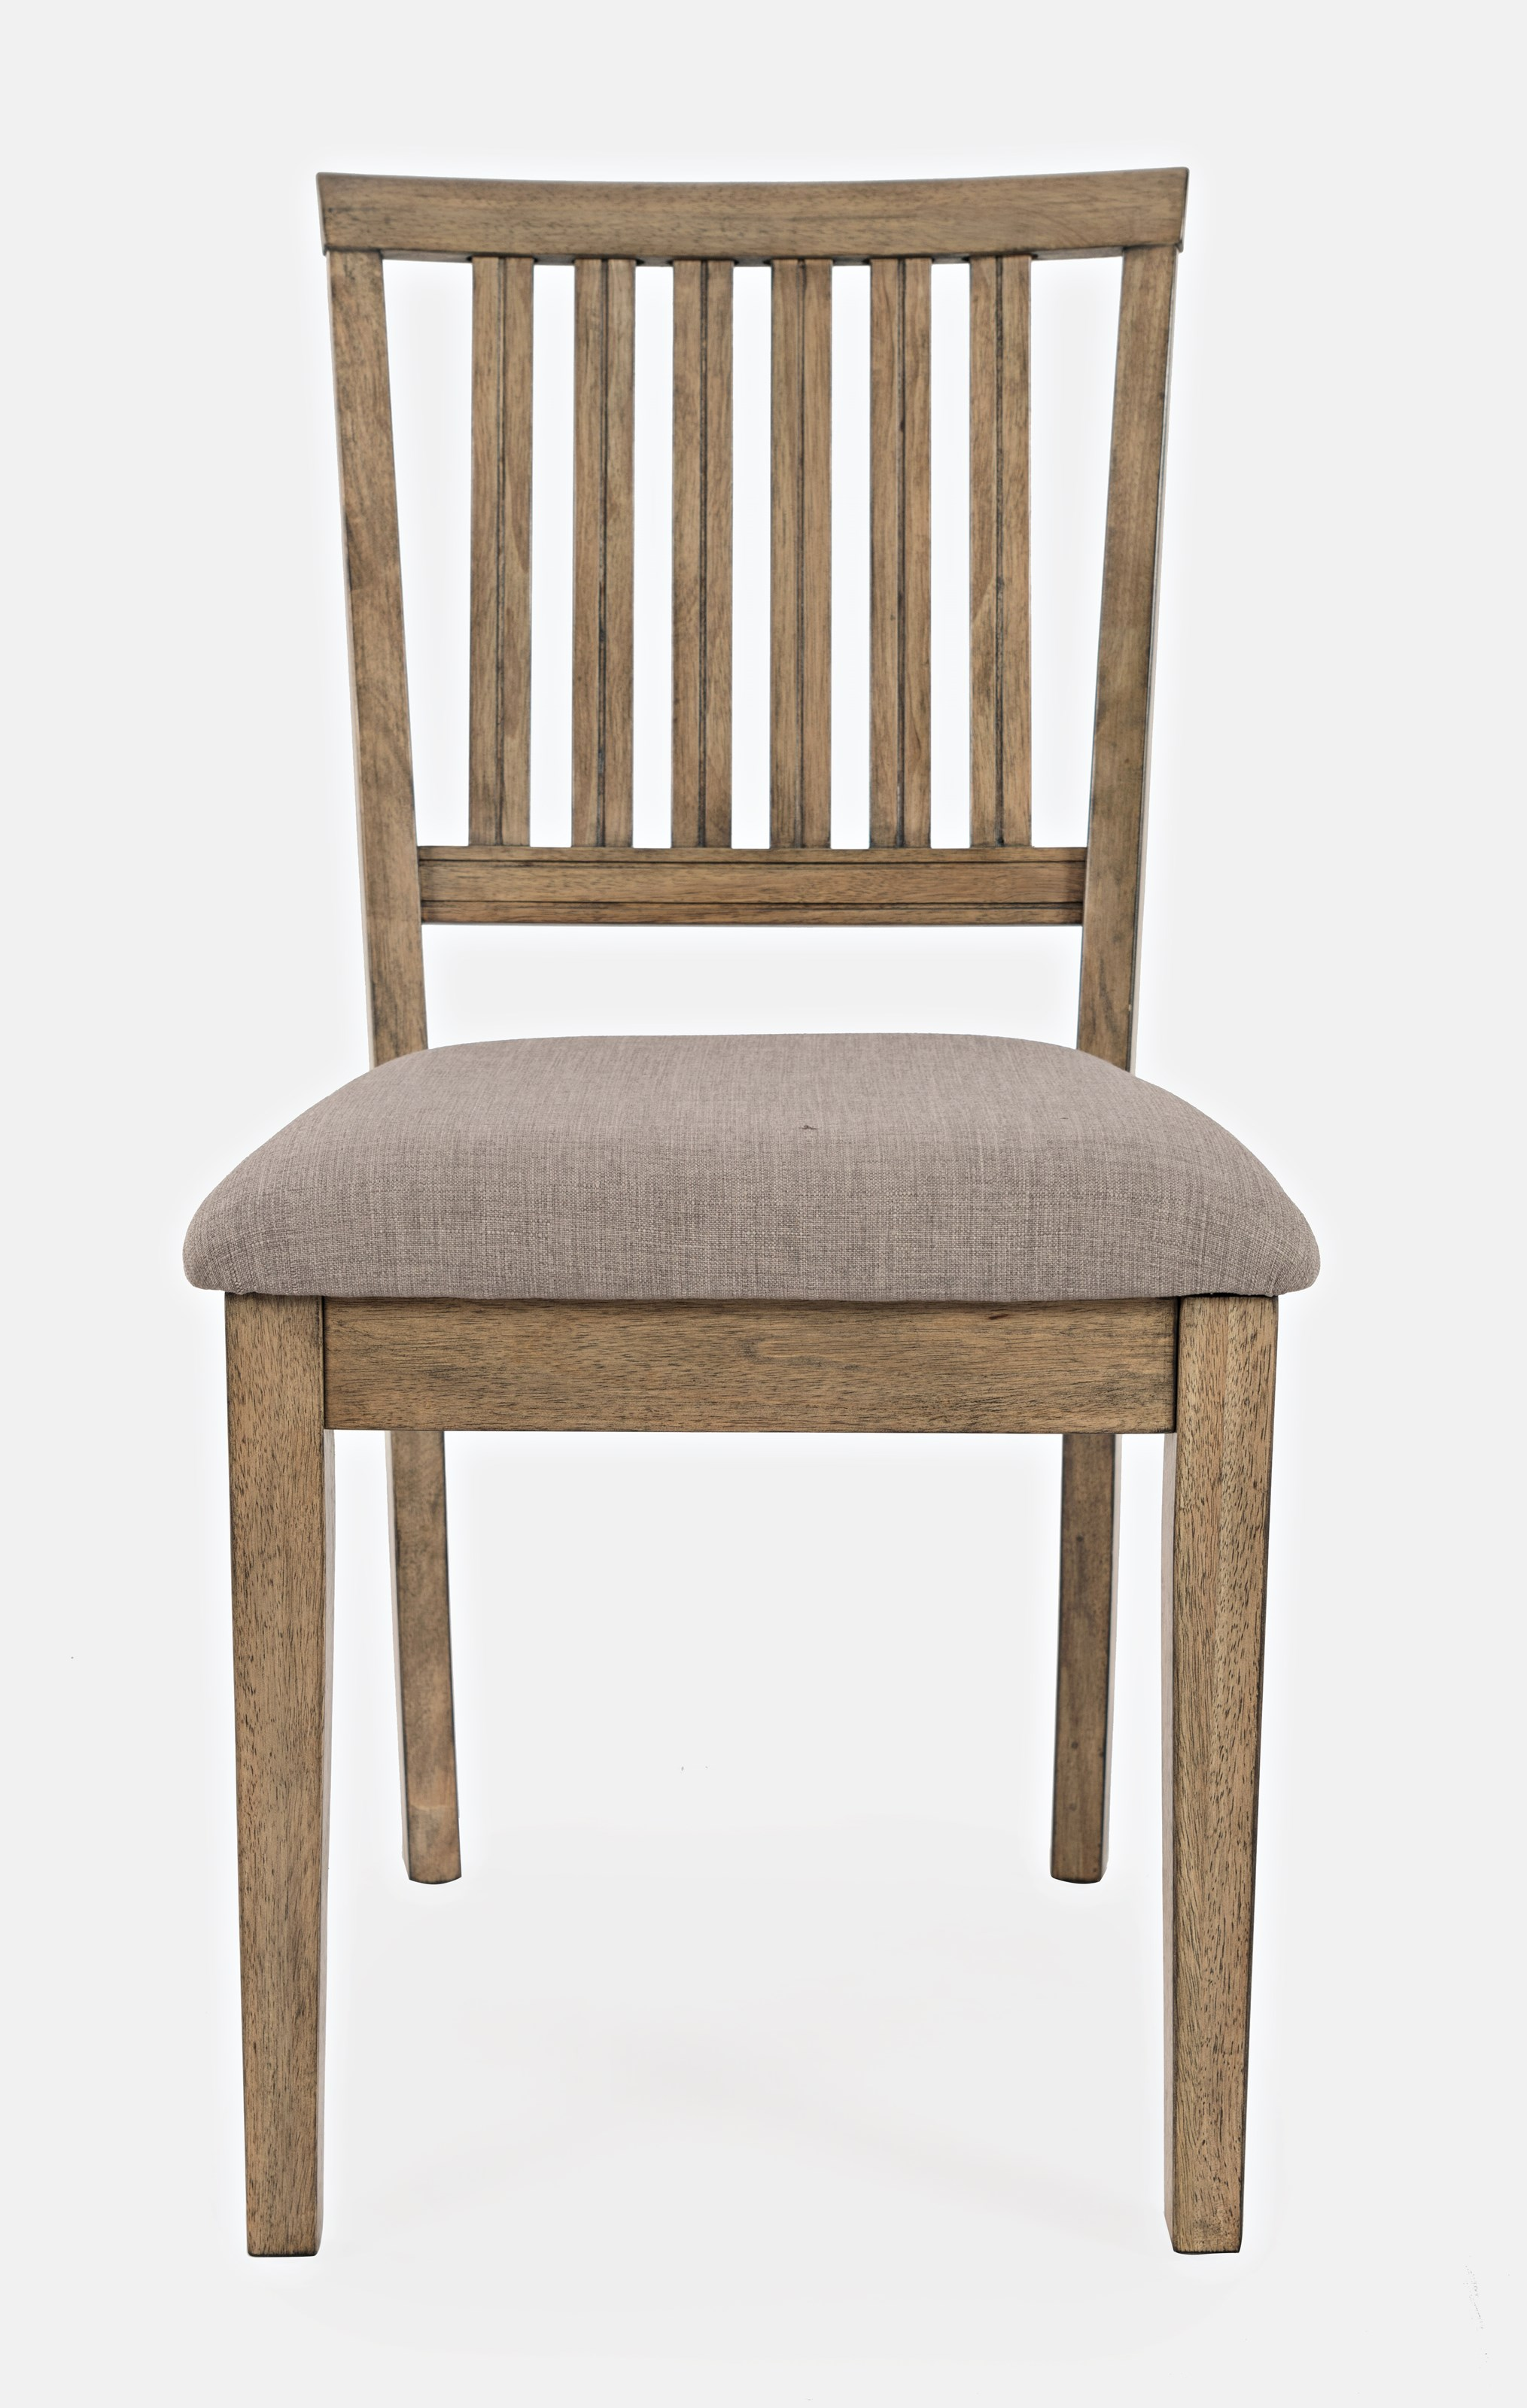 Prescott Park Slatback Chair (2/CTN) by Jofran at Van Hill Furniture